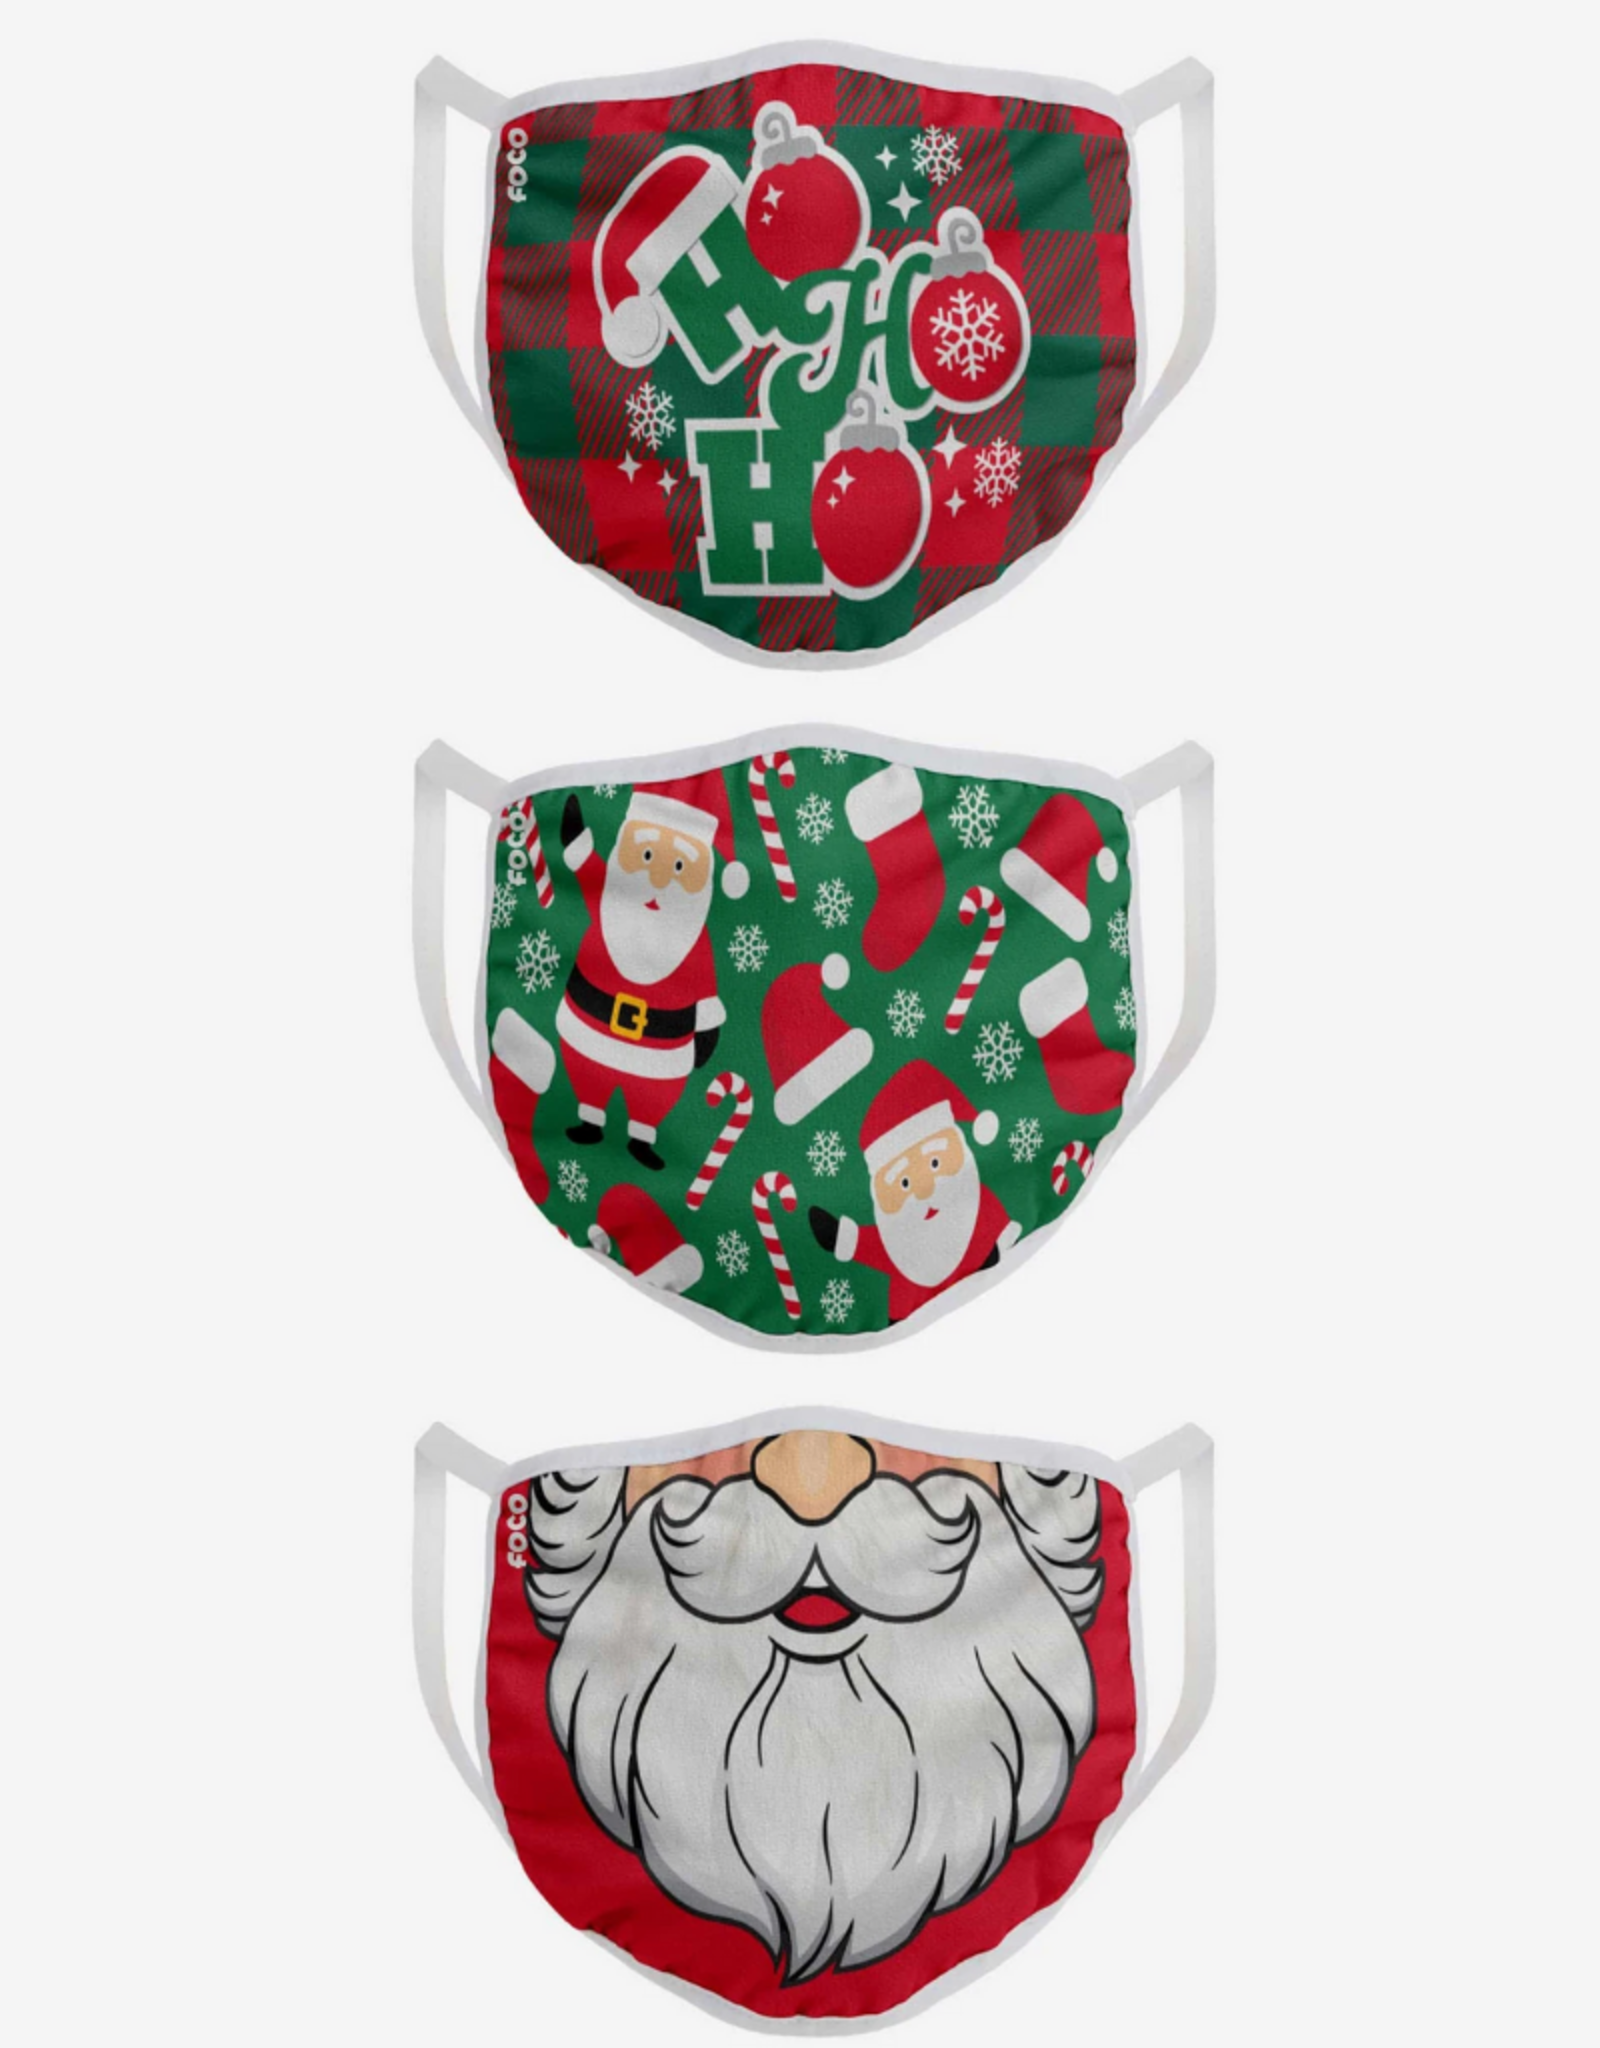 FOCO FOCO Adult Christmas Face Cover 3 Pack